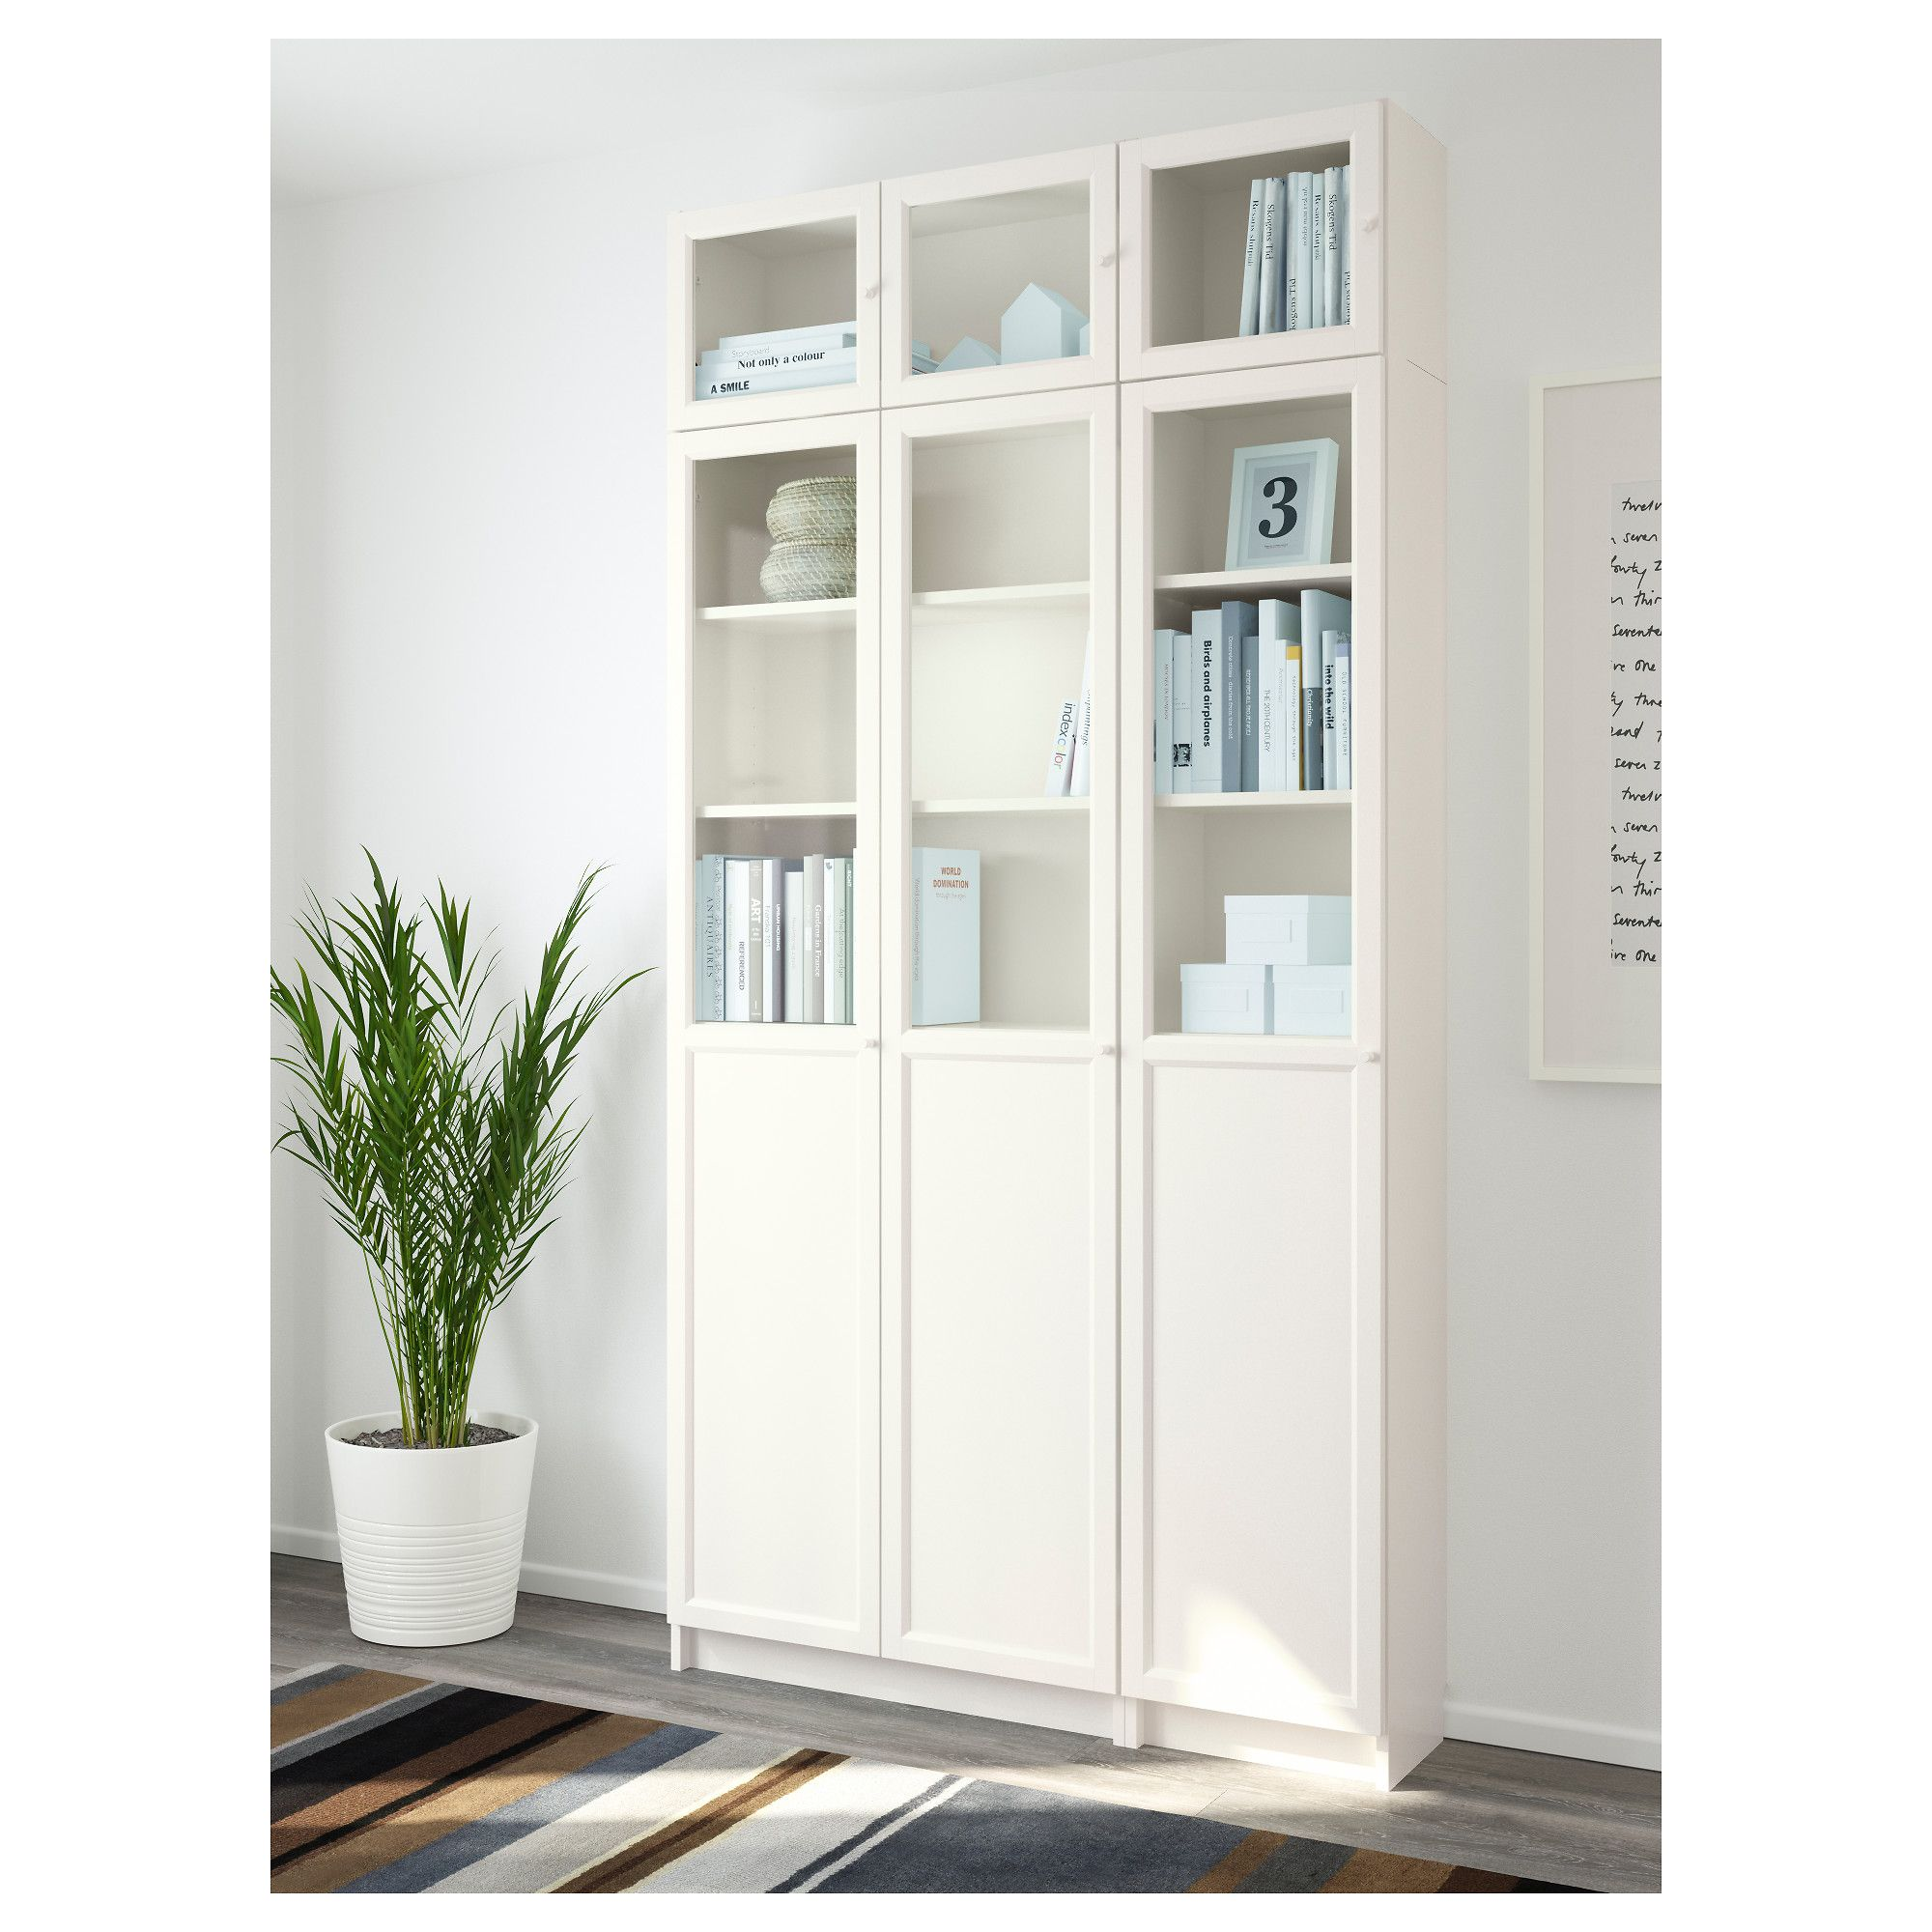 Ikea Burbank Directions Billy Bookcase White Glass Ikea In 2019 Cupboard Options Glass